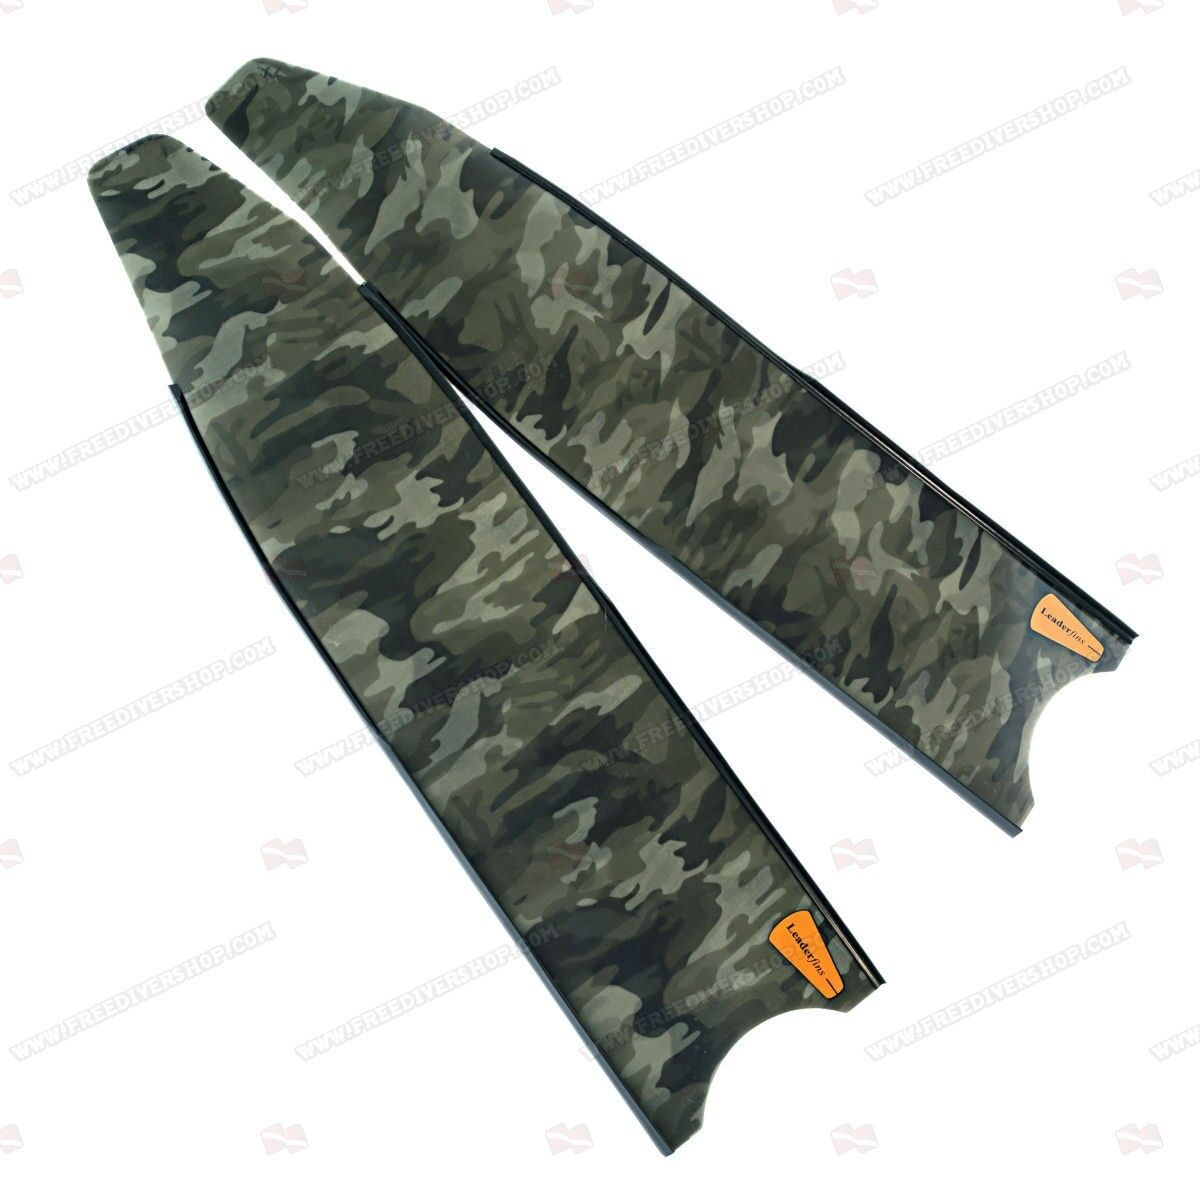 Leaderfins Green Camo Freediving  Spearfishing Blades (1 Pair   2 Blades)  up to 50% off